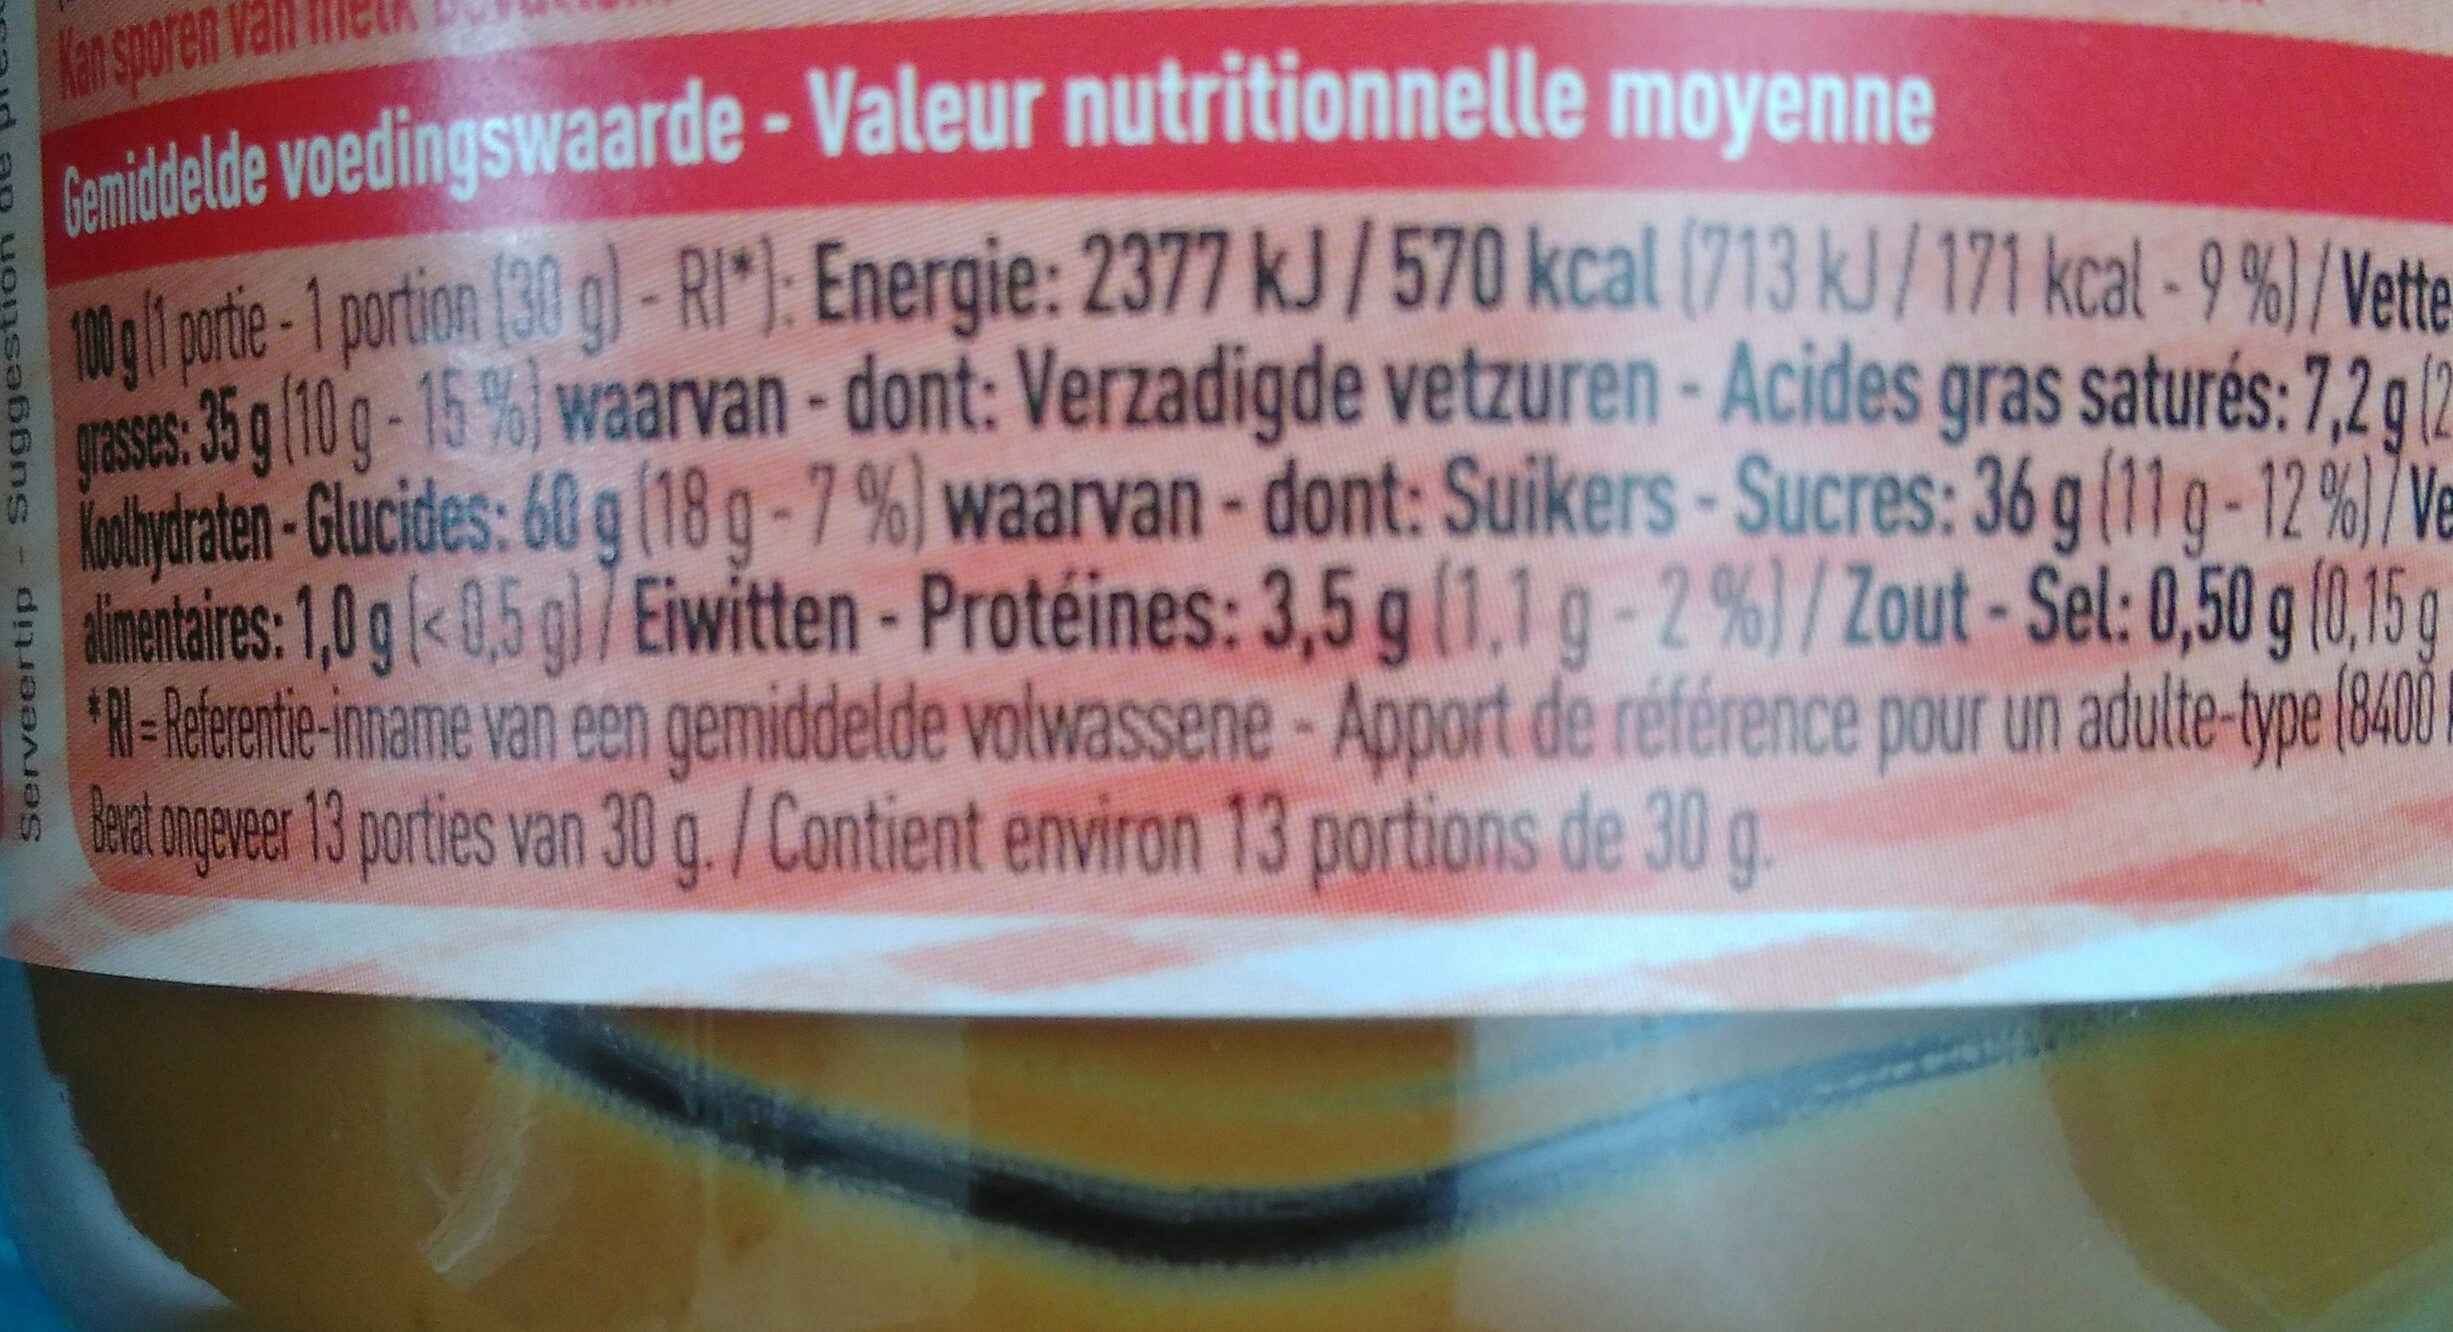 Pate de speculoos - Nutrition facts - fr